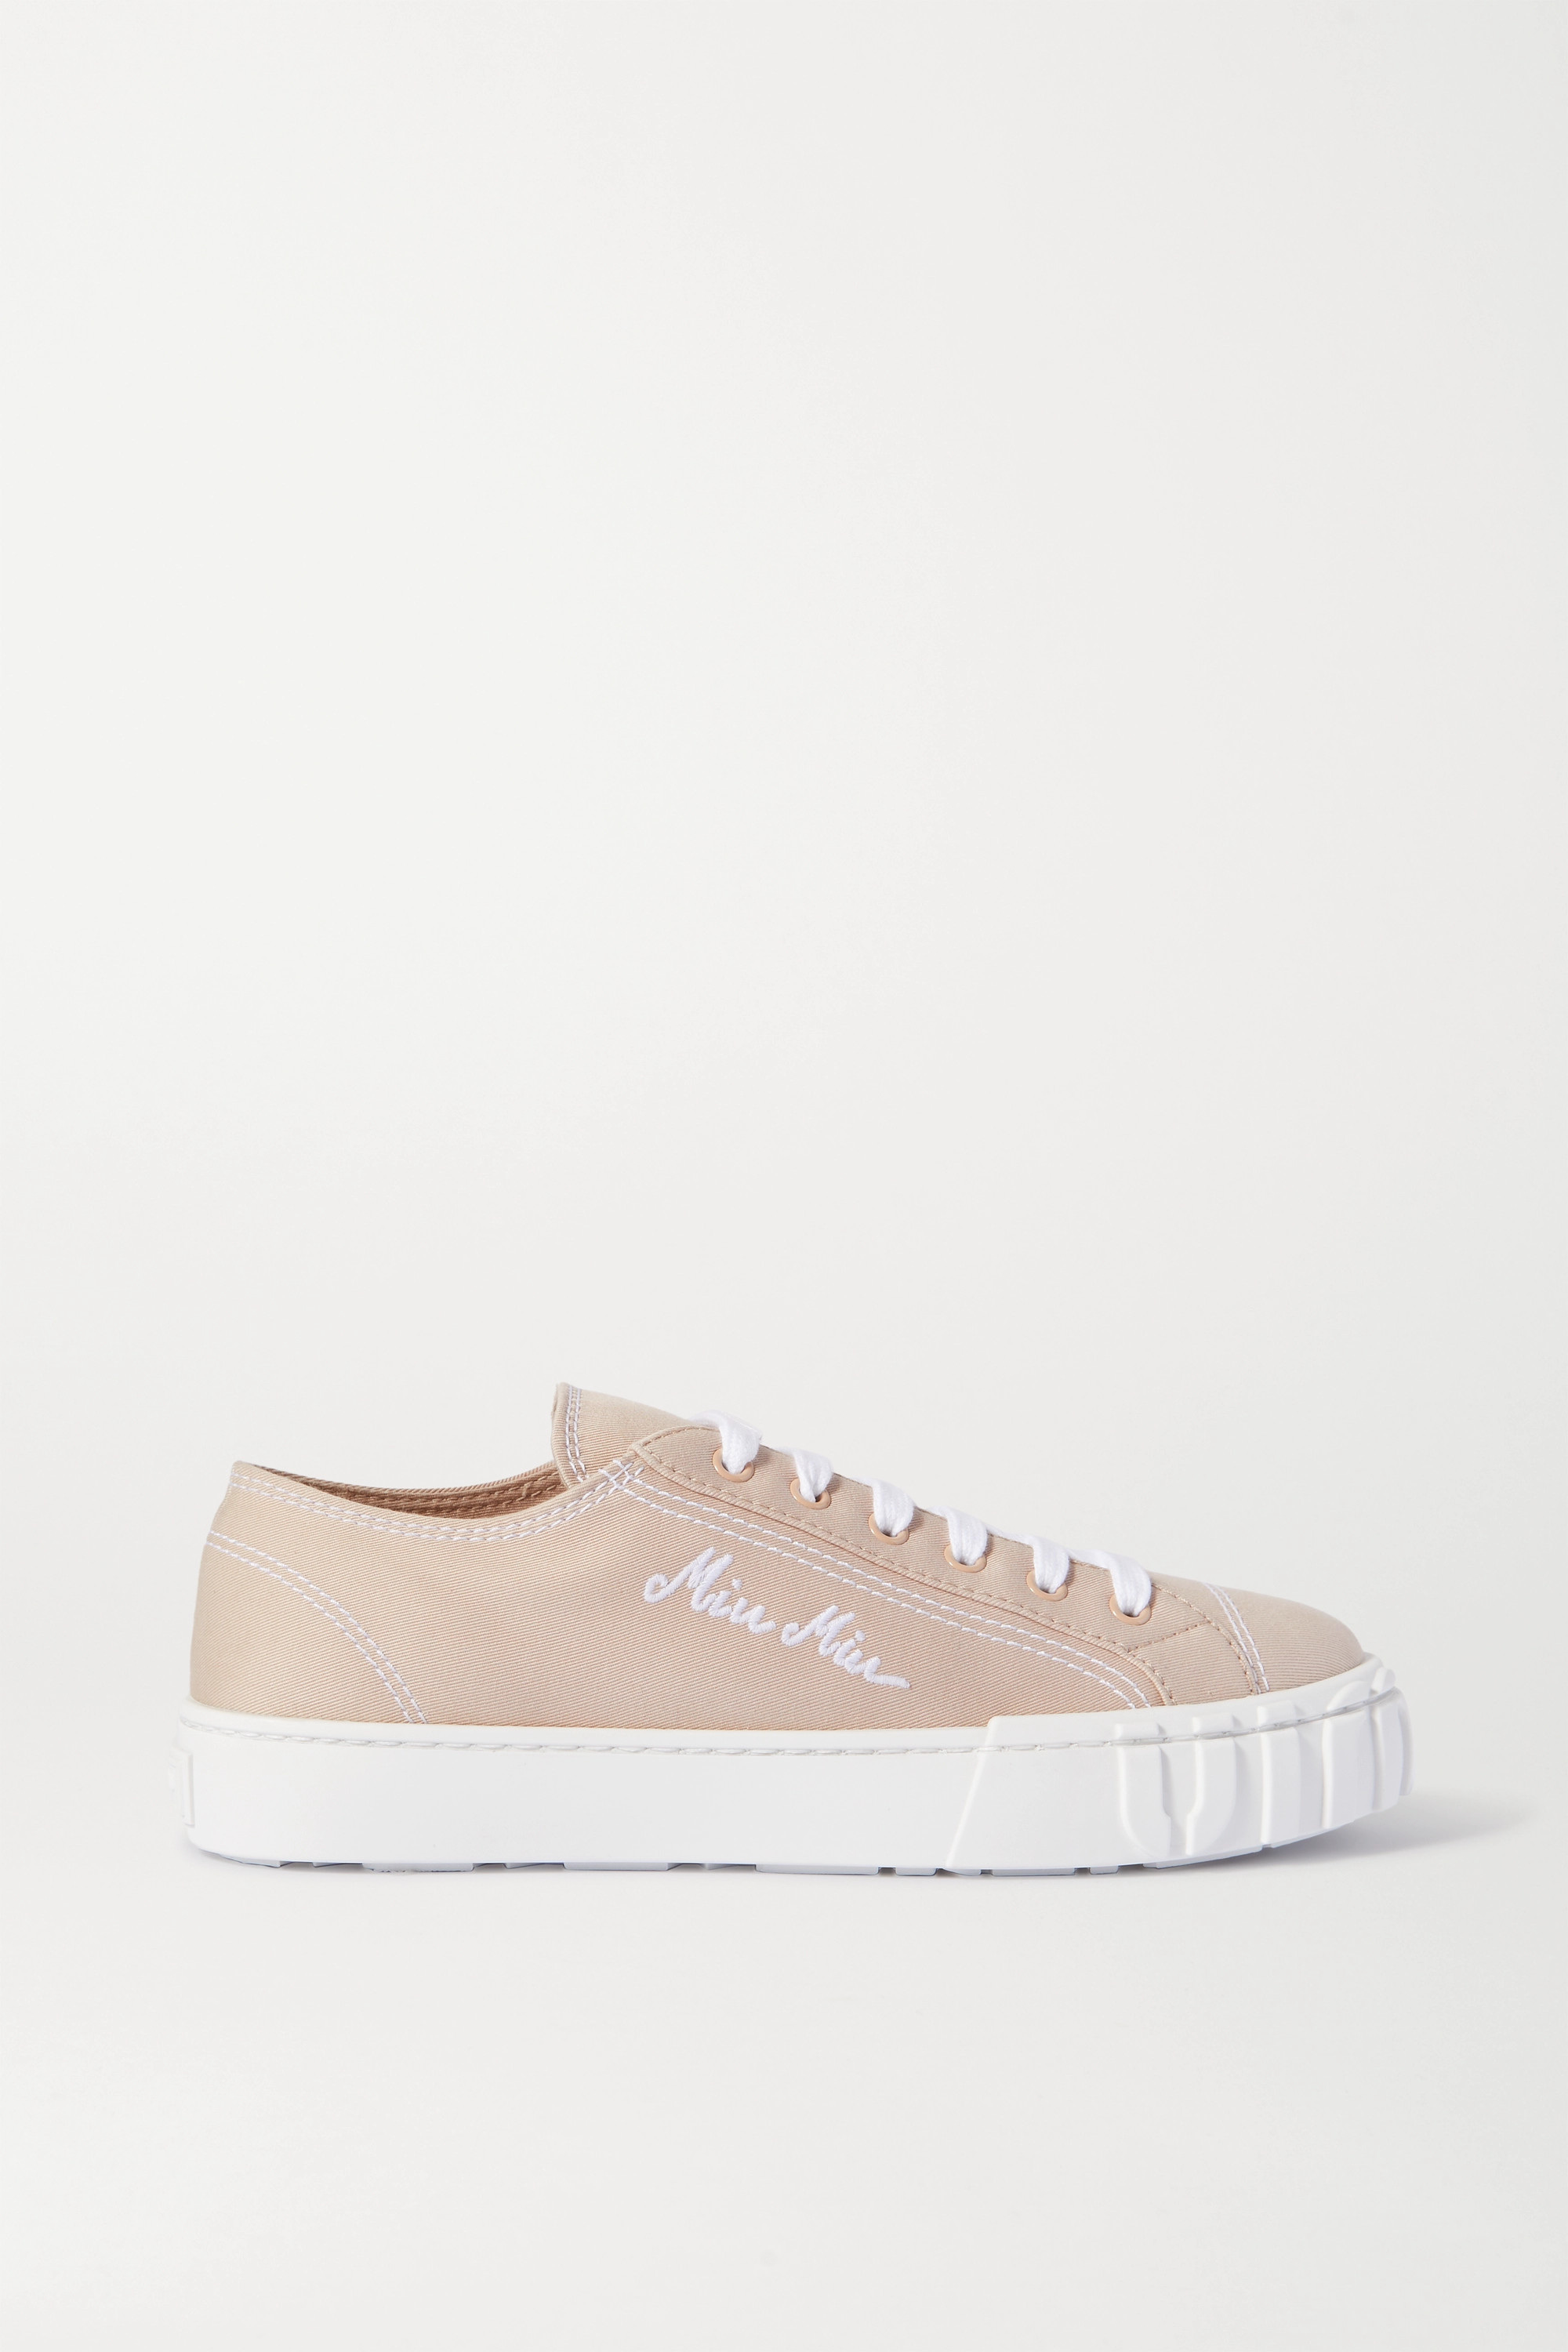 Beige Embroidered canvas sneakers | Miu